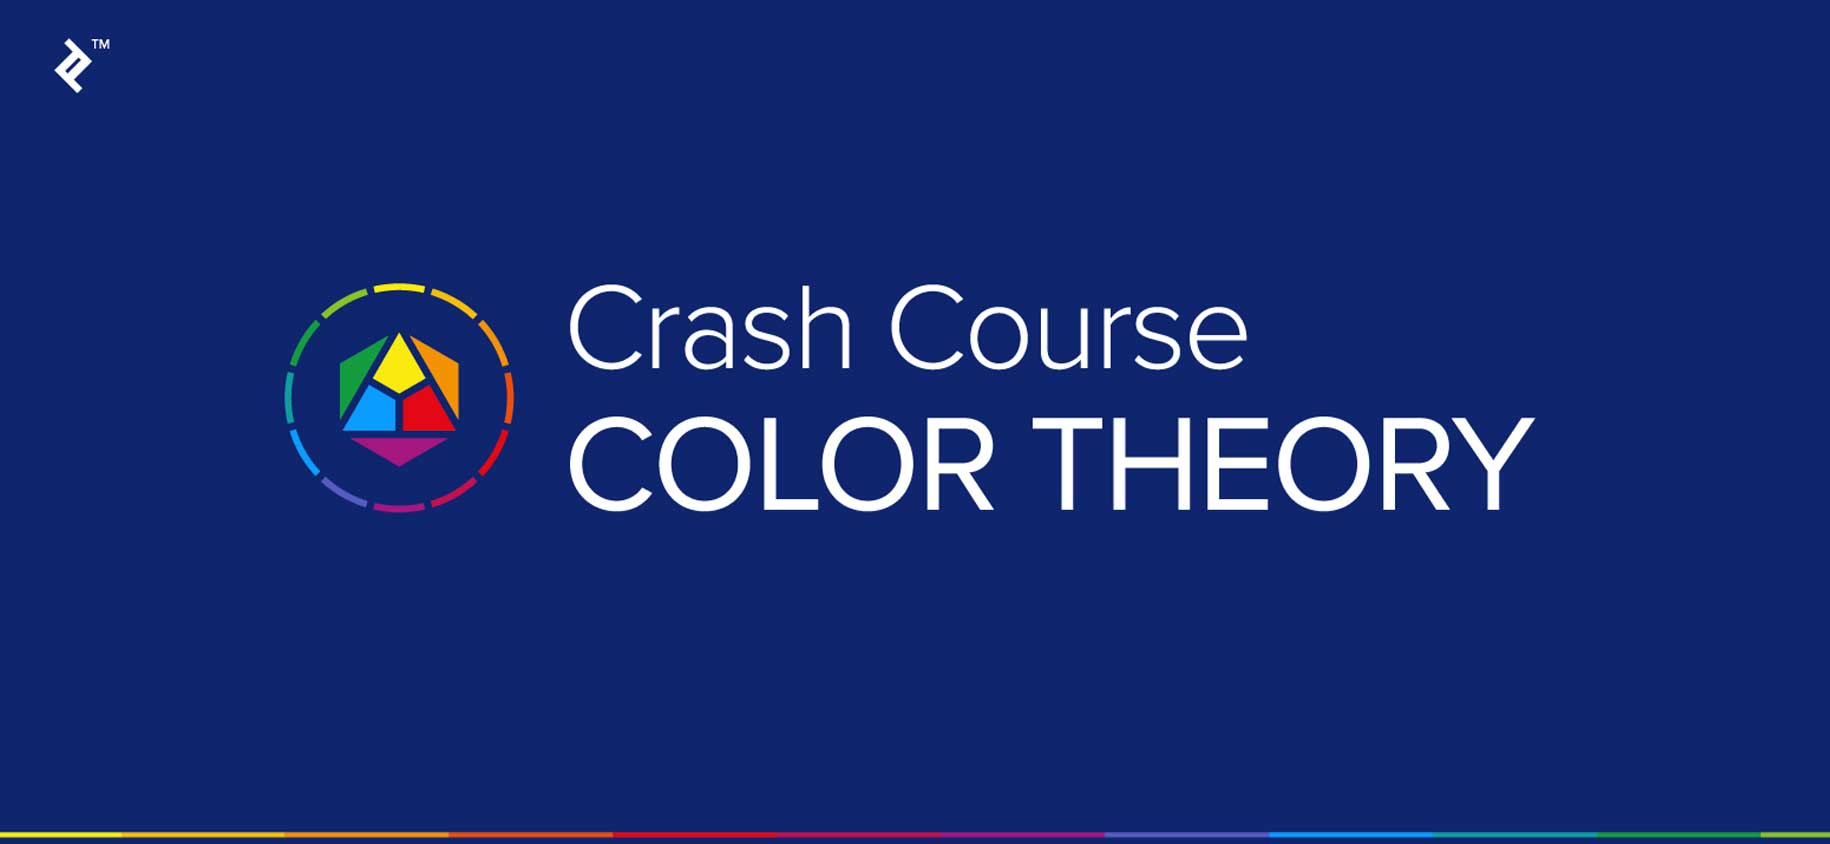 Color Theory for Designers – A Crash Course [Infographic]